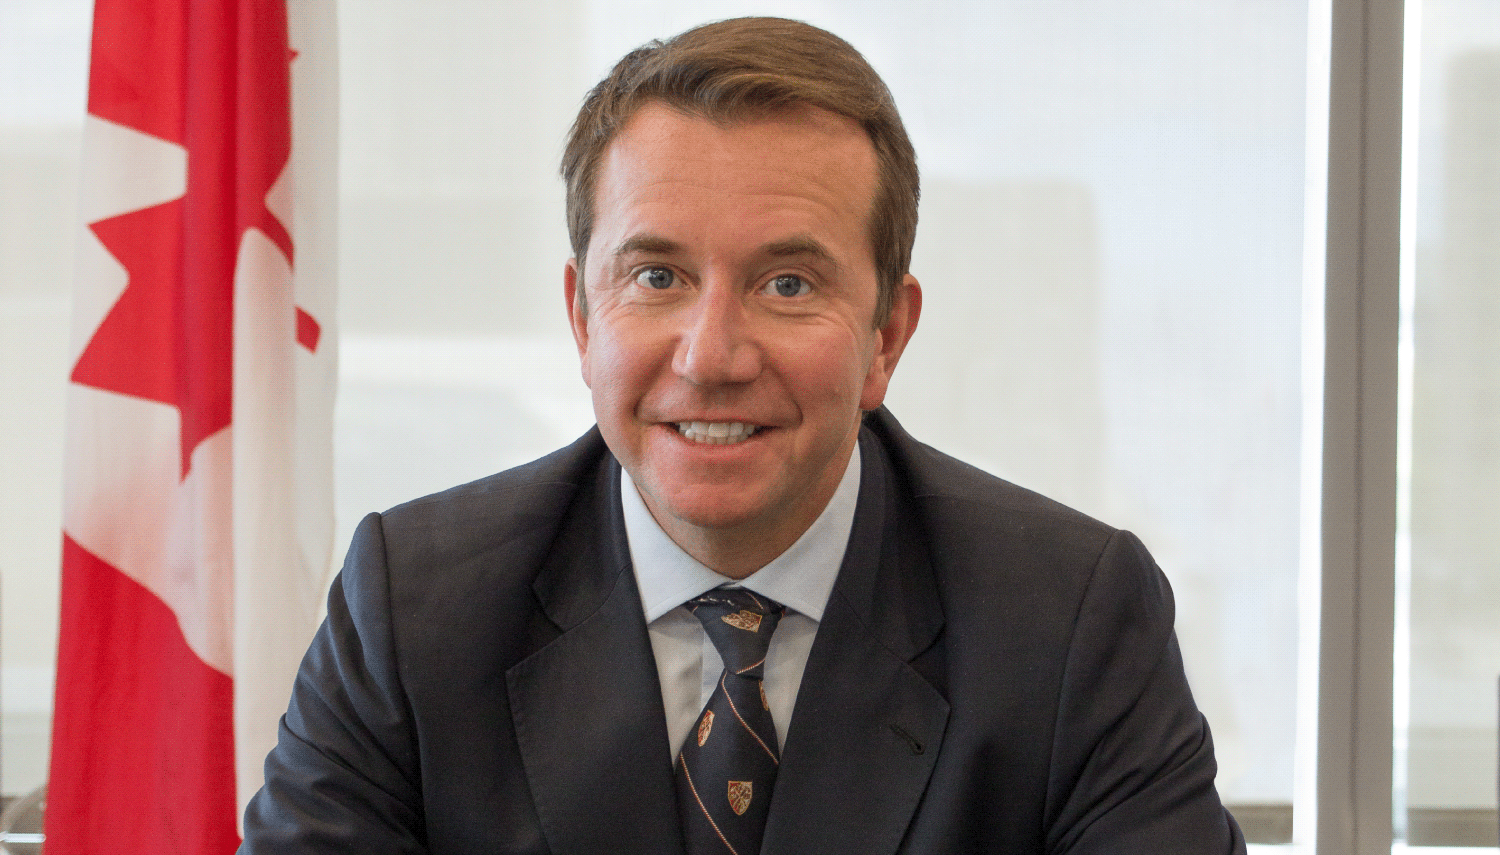 Une photo de l'honorable Scott Brison